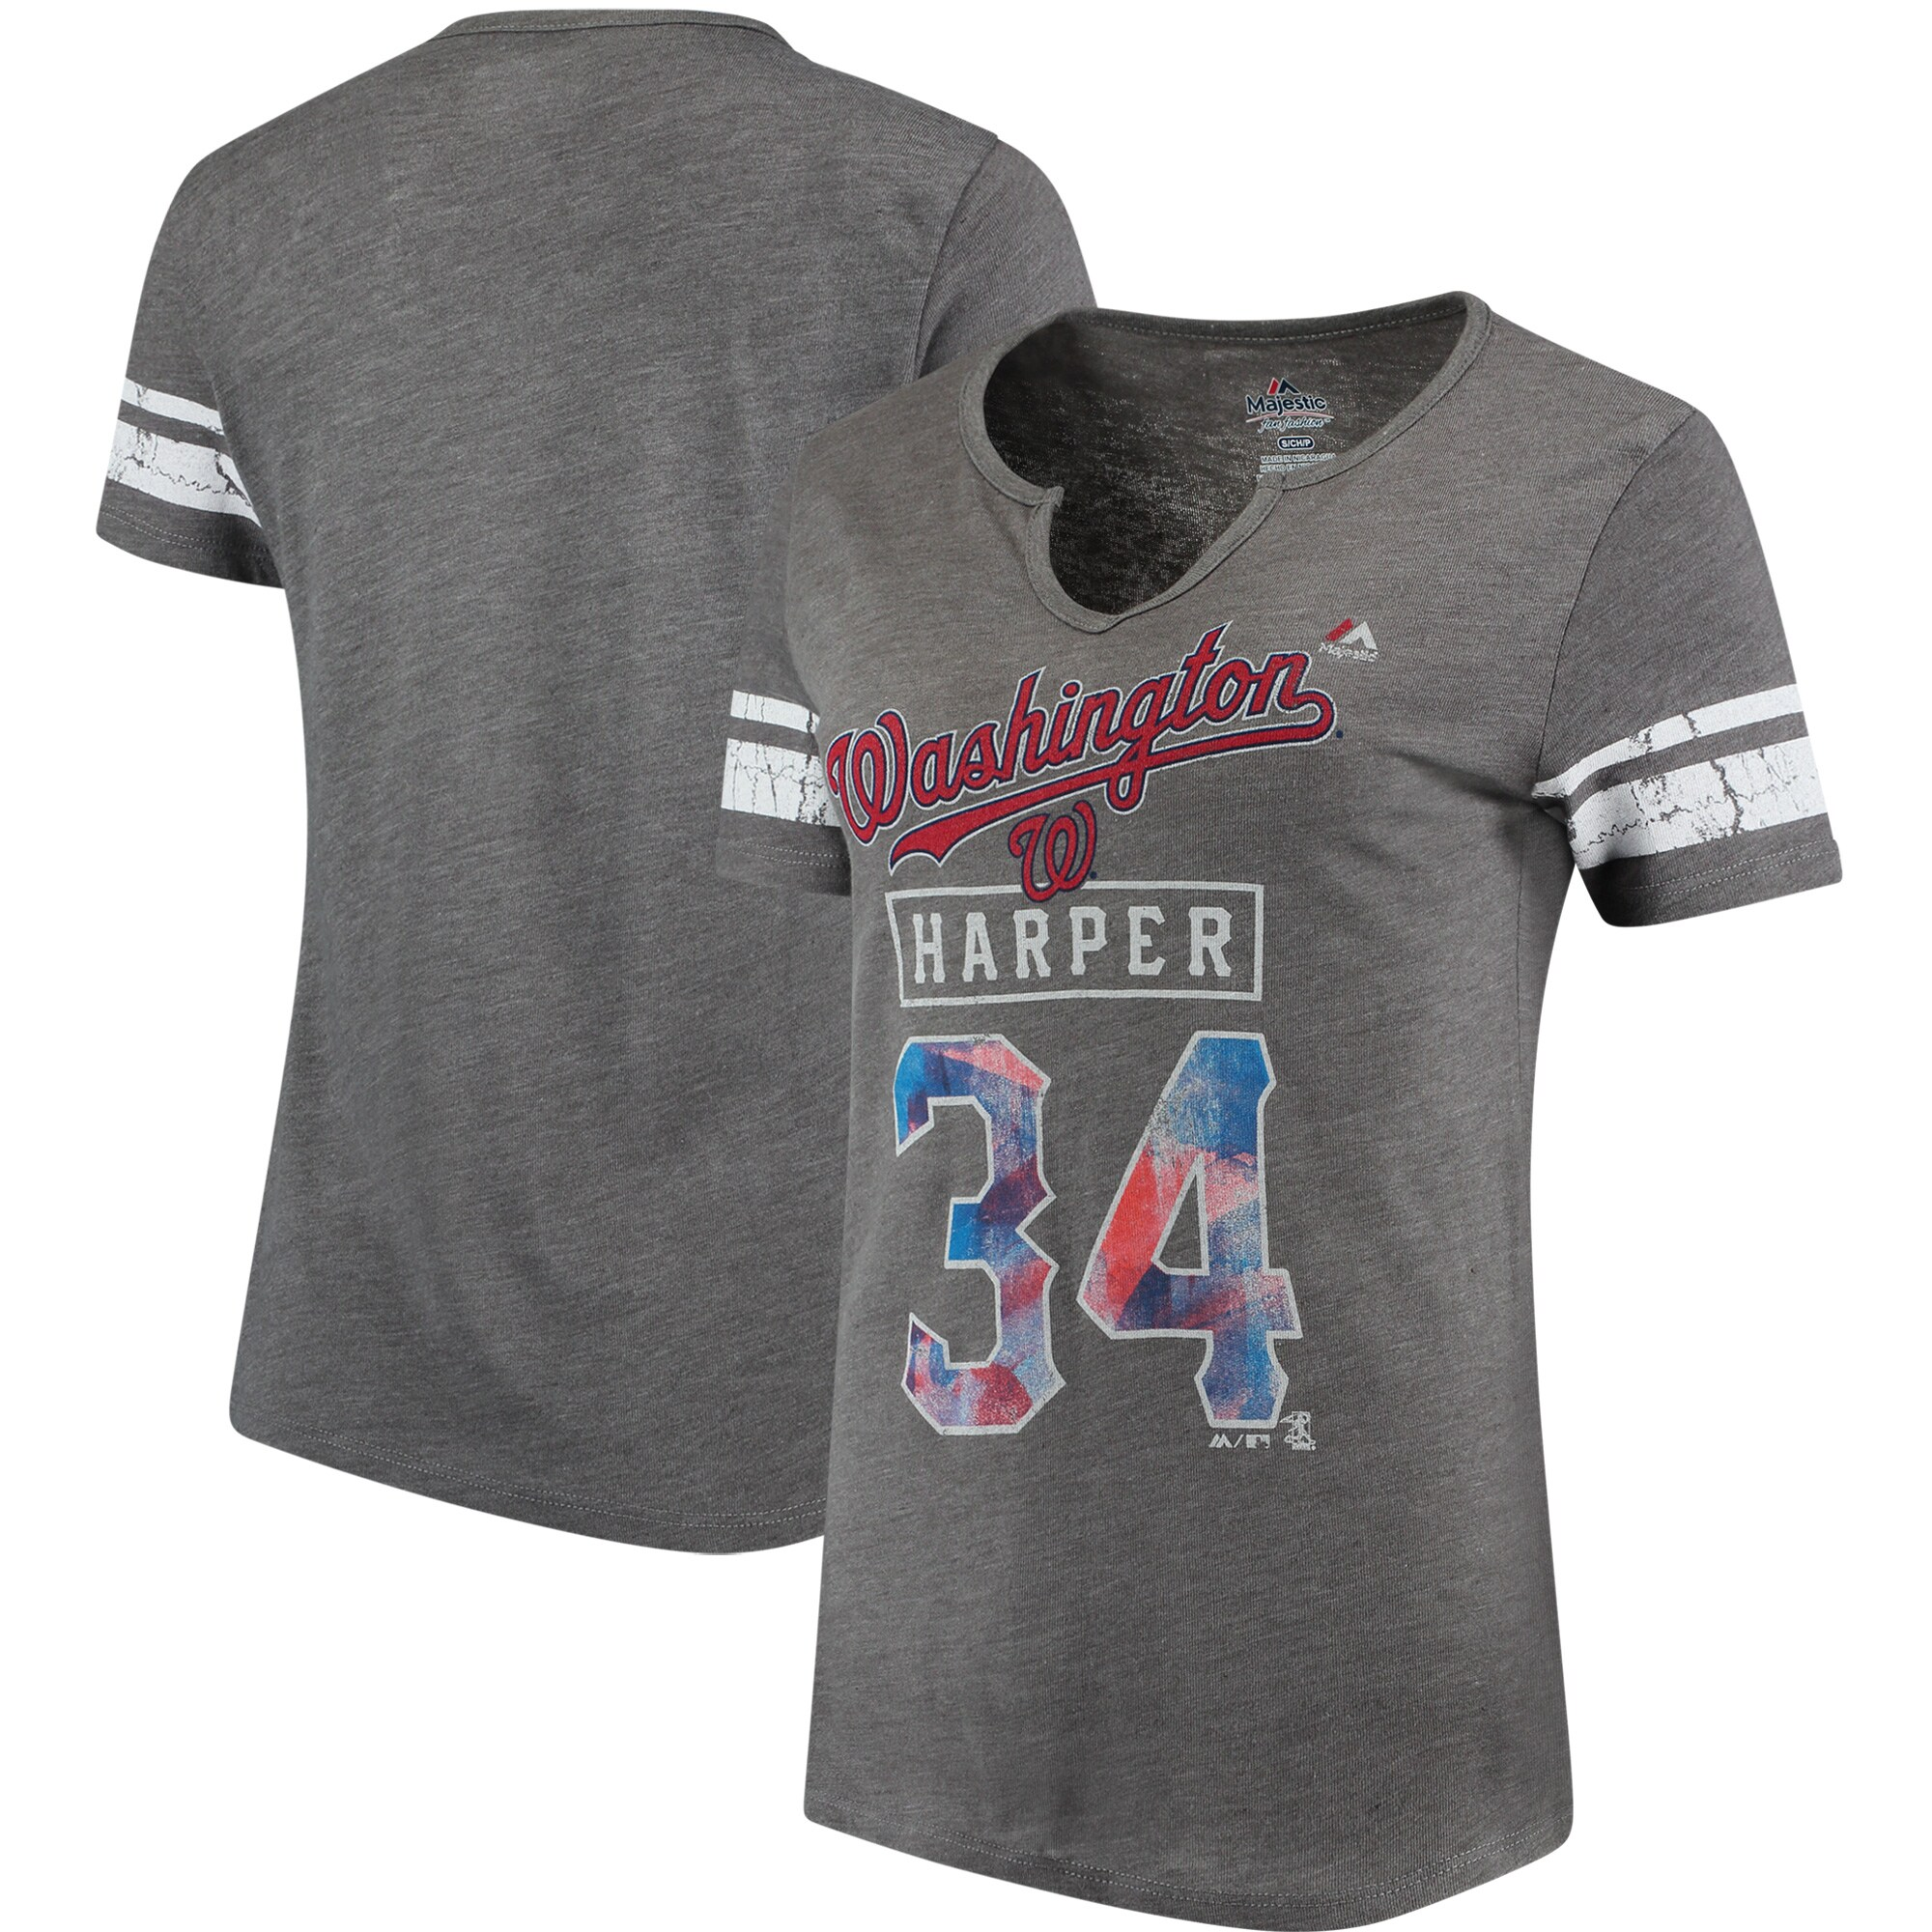 Bryce Harper Washington Nationals Majestic Women's Knucklecurve V-Notch T-Shirt - Gray